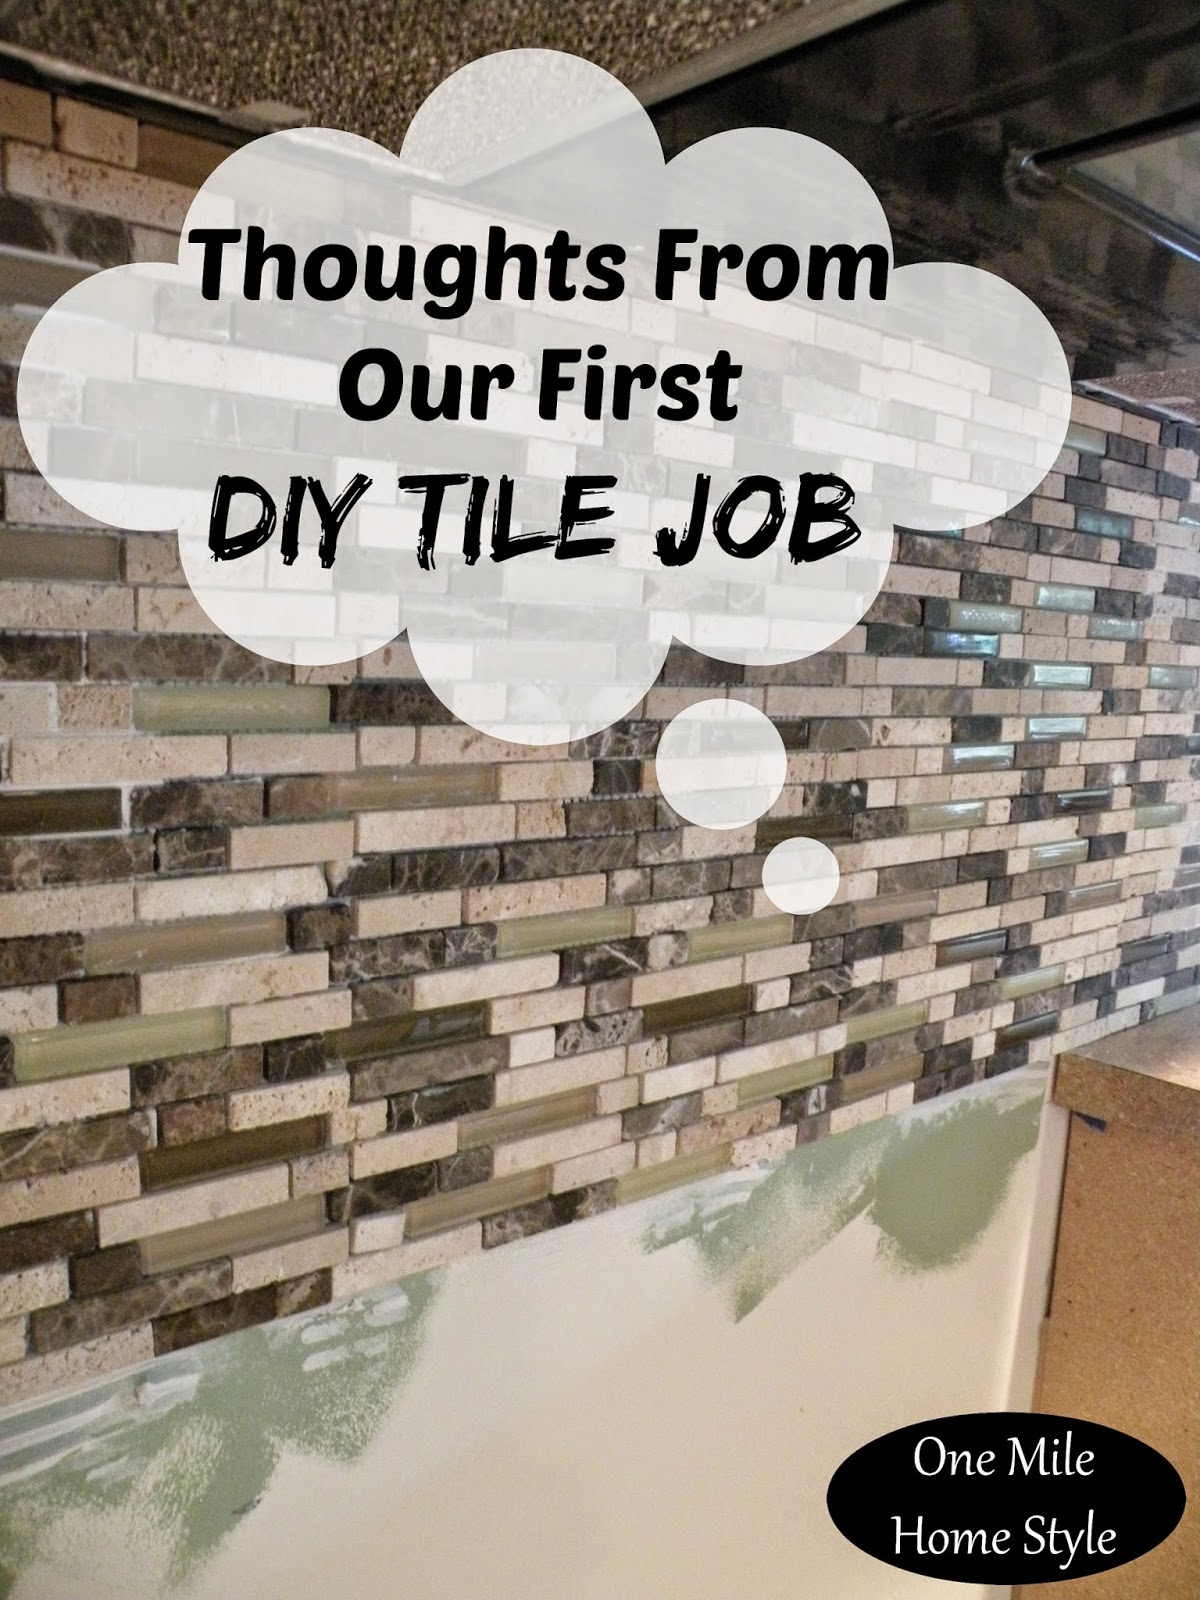 Thoughts from our first DIY tile job | One Mile Home Style